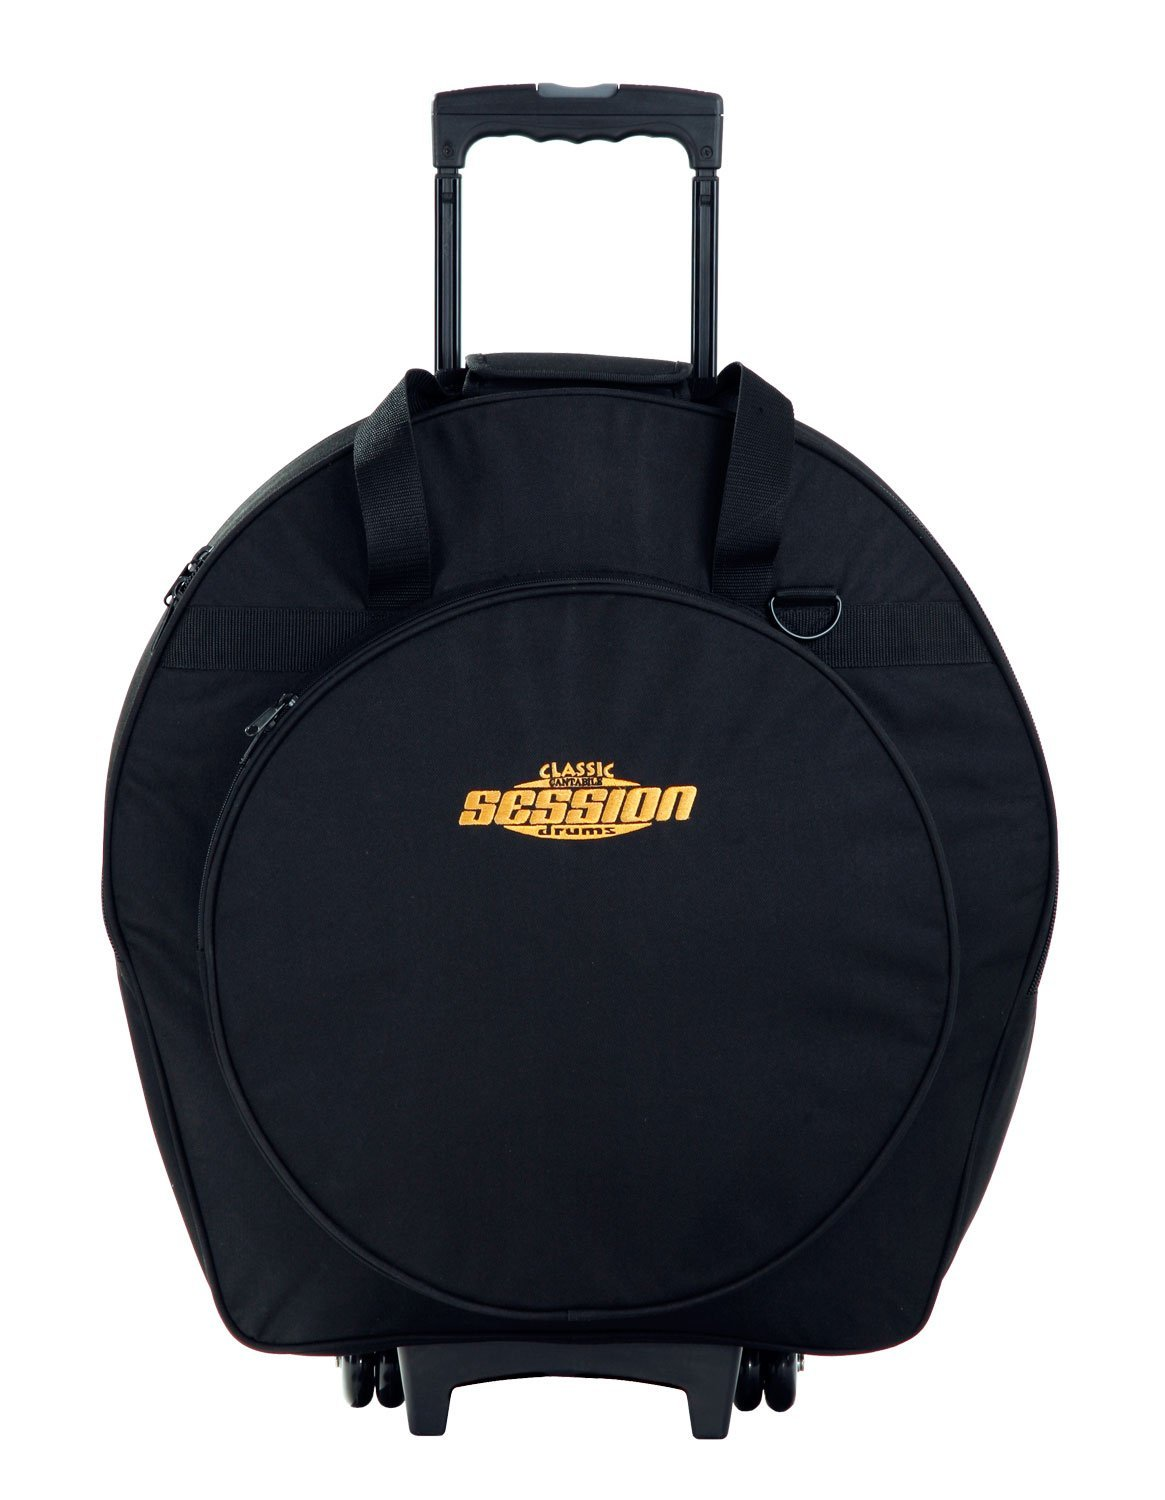 SAC CYMBALES BATTERIE (1)